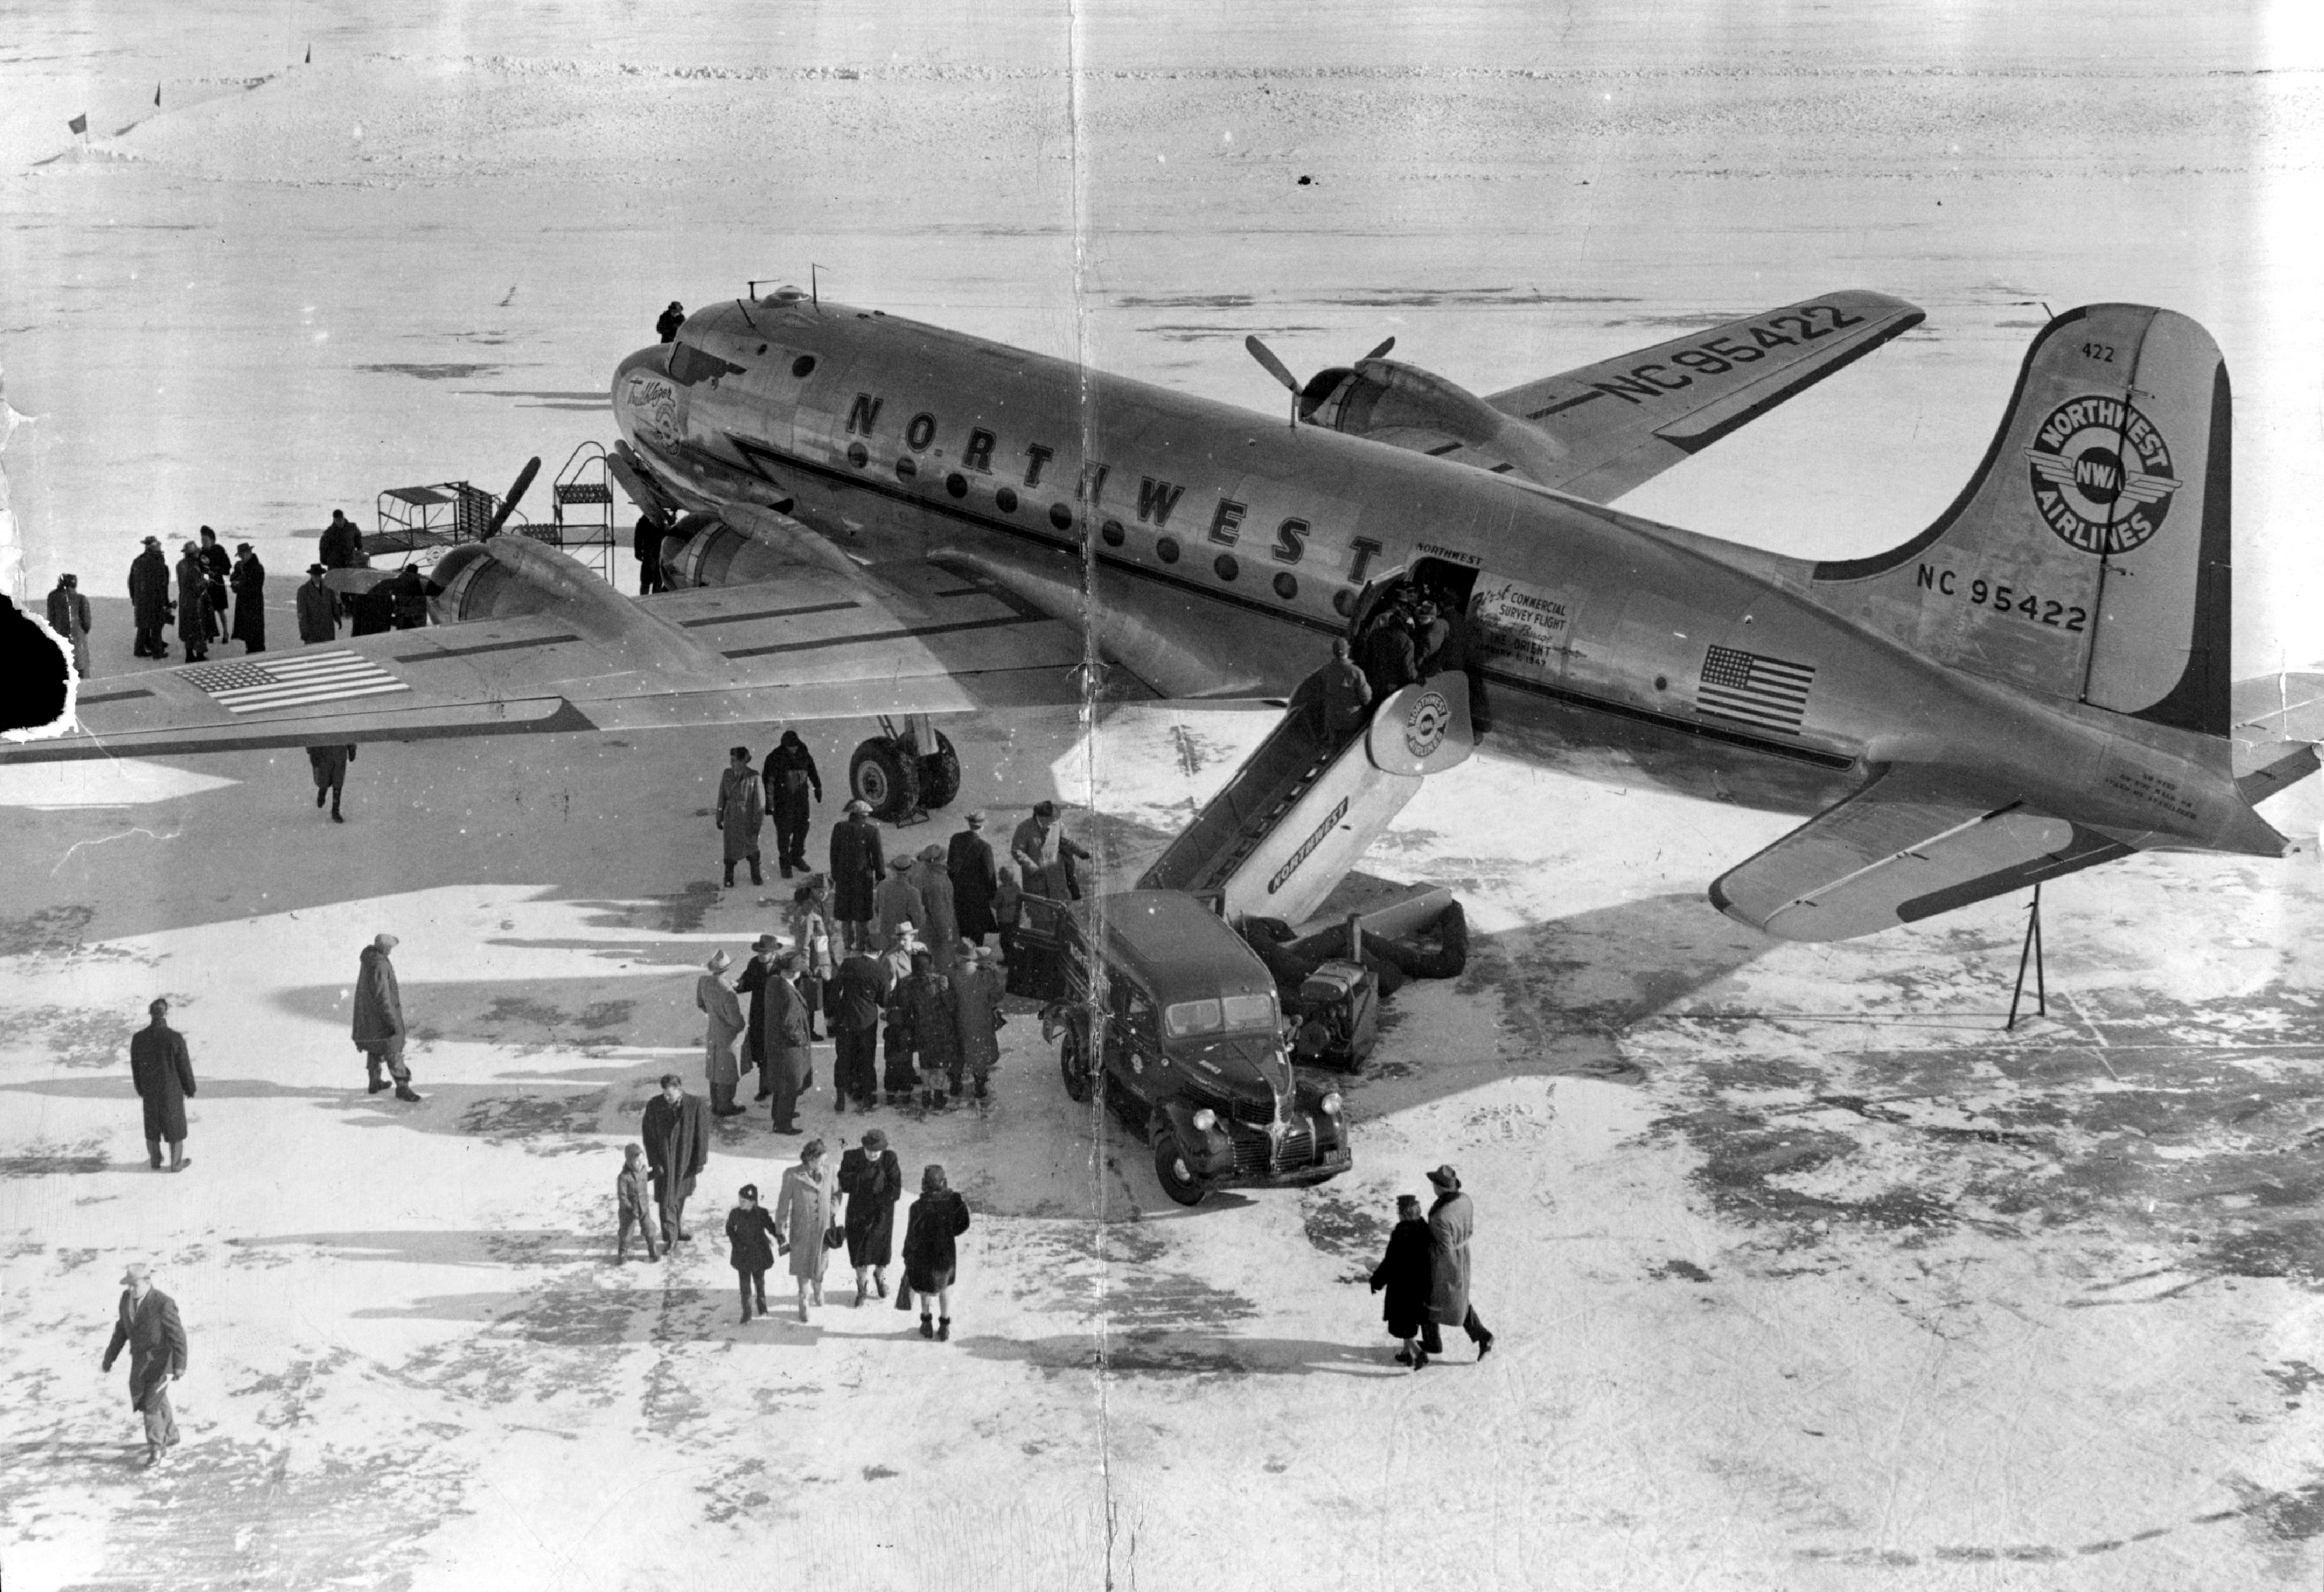 People prepare to board 'Trail Blazer,' a Douglas DC4 airplane, on Jan. 1, 1947. The flight to several countries in Asia was a survey of Northwest Airline's soon-to-be-established overseas route.